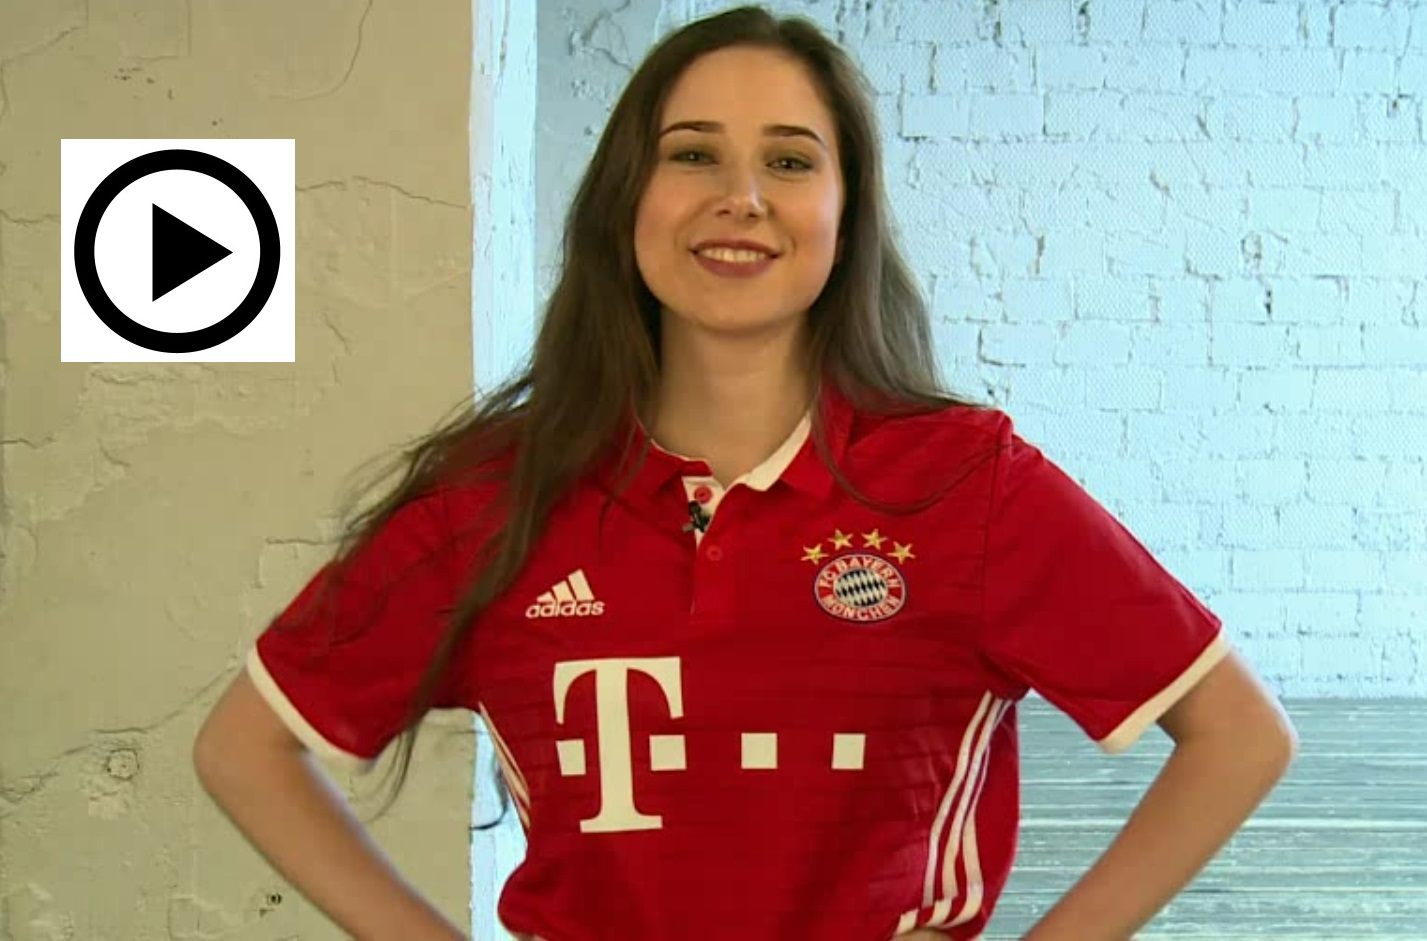 FC Bayern video and home kit